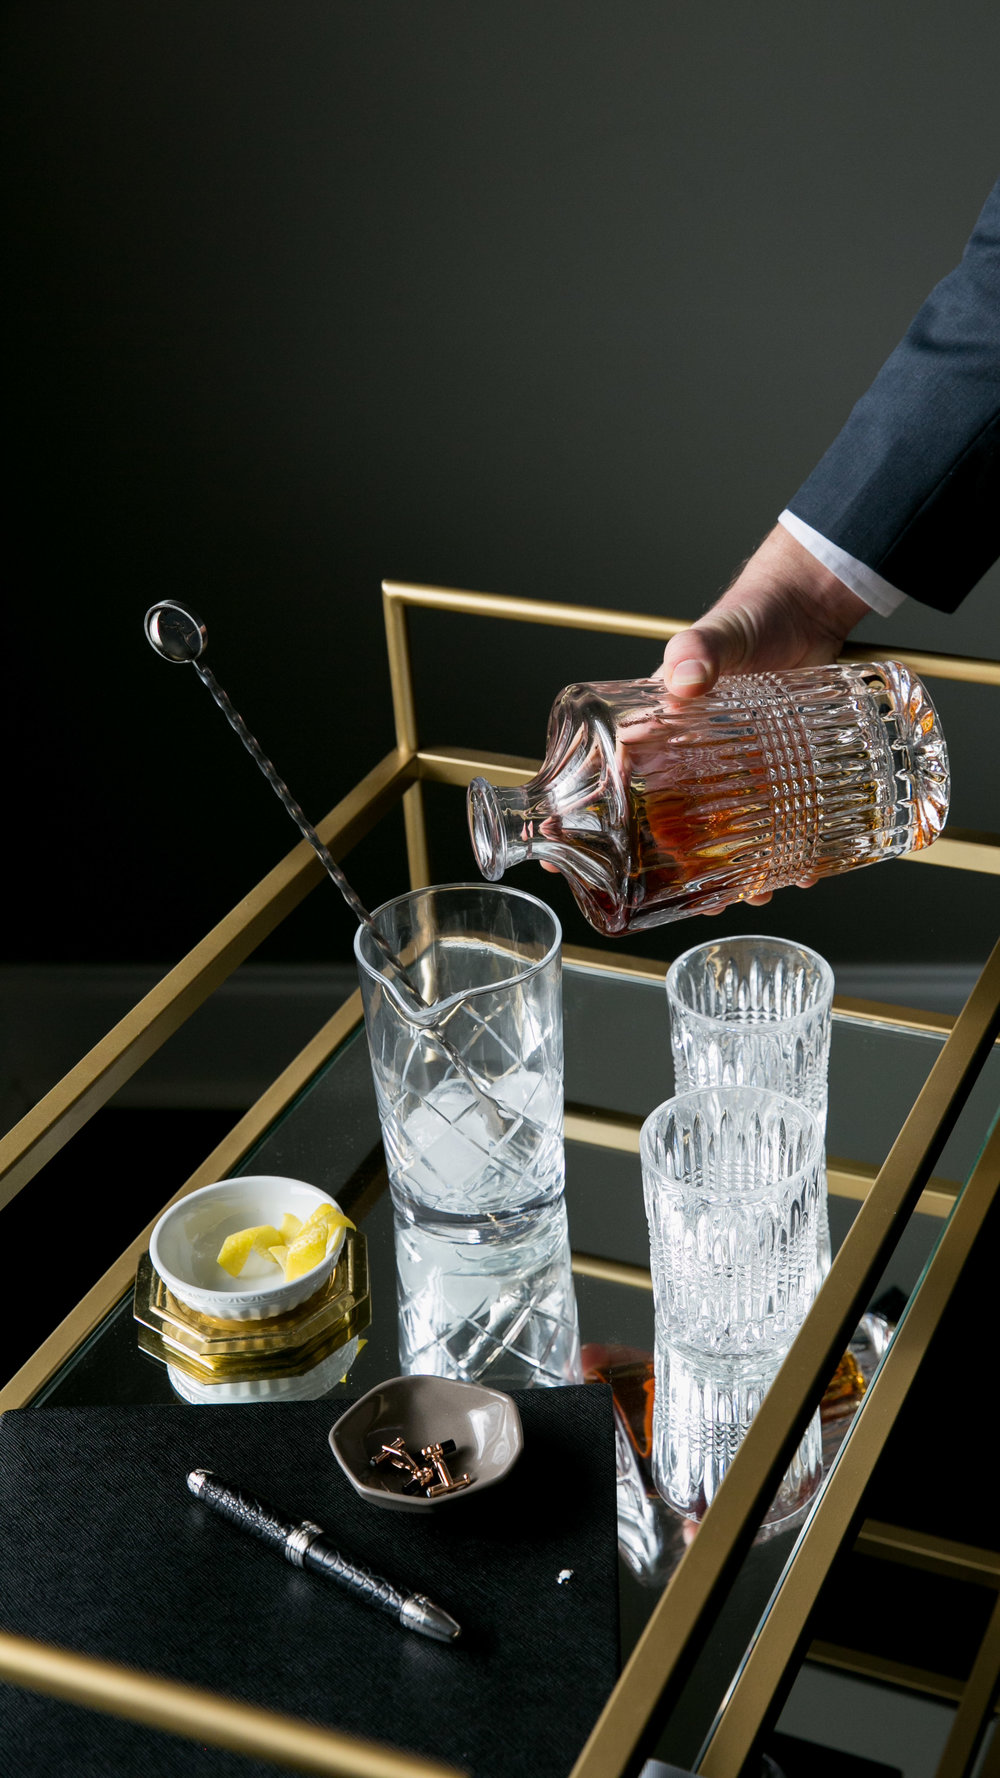 LisaDiederichPhotography_Montblanc_BarCart_ProductPhotography-9.jpg